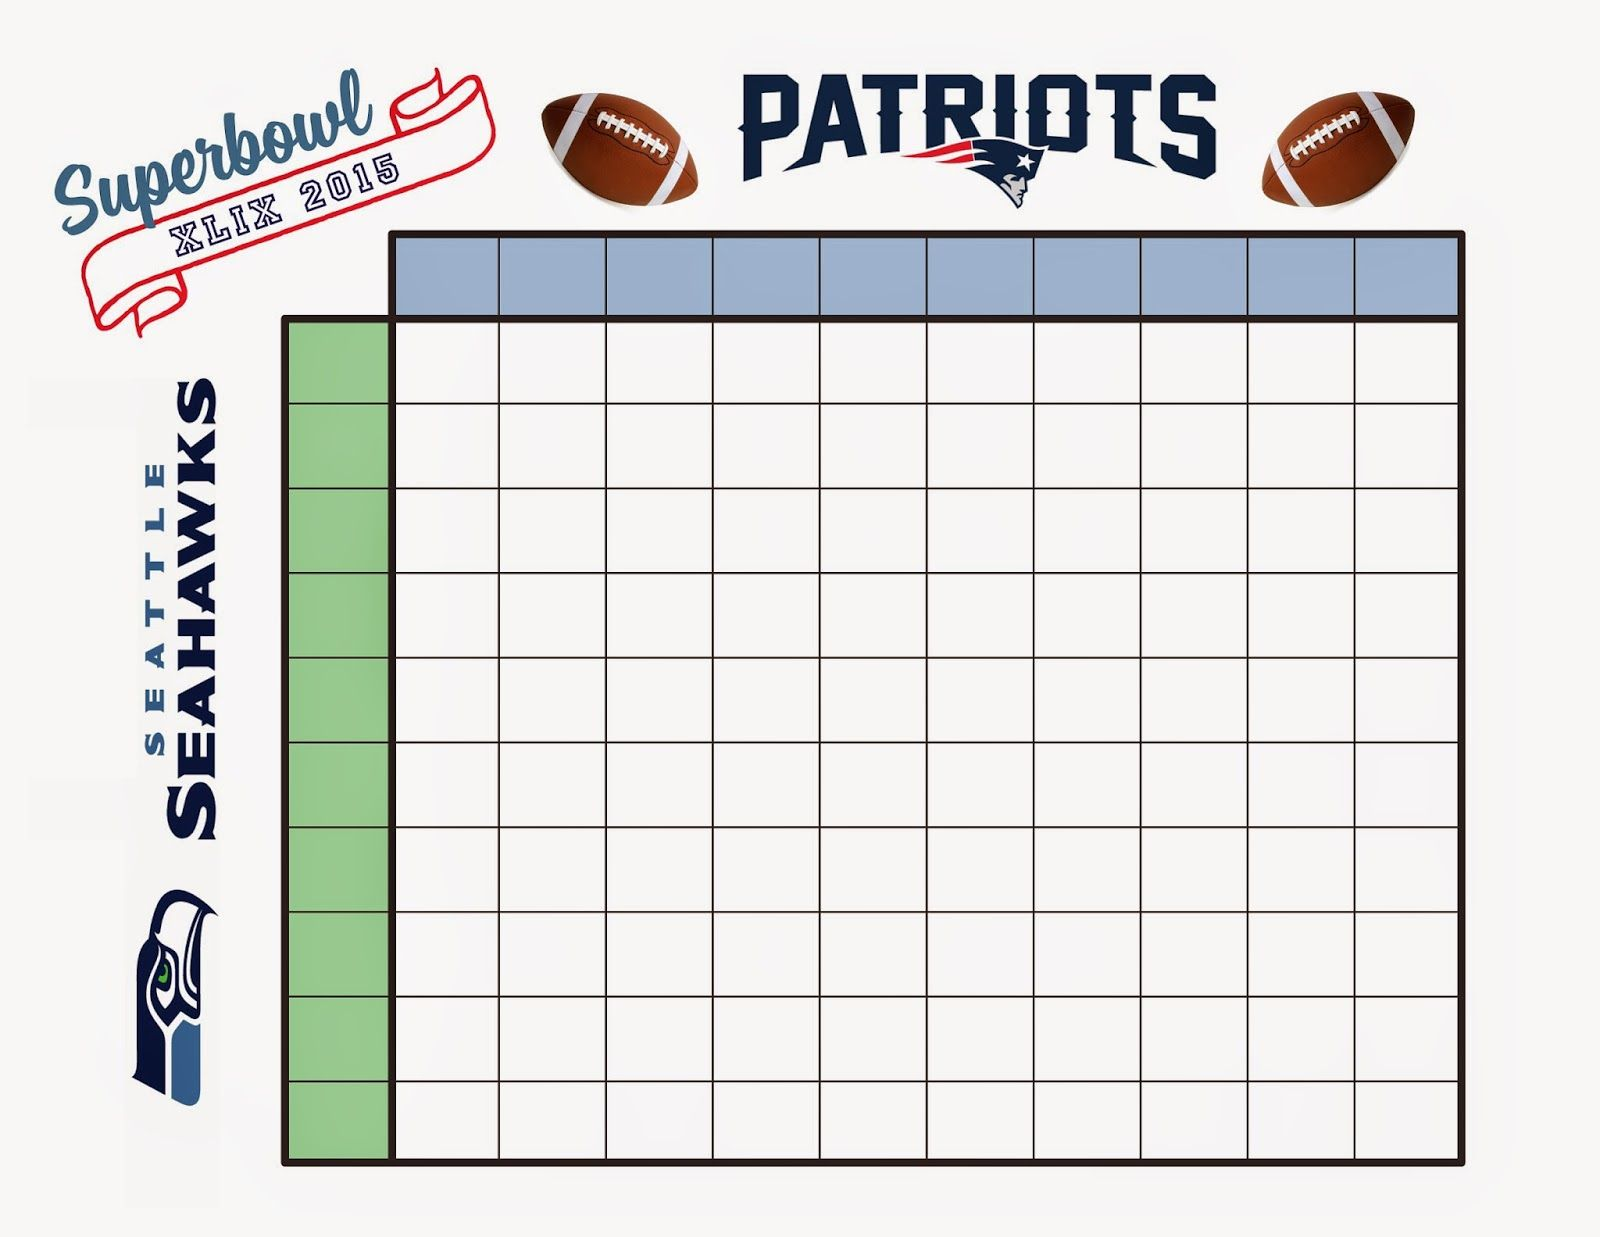 Free Download Otball Squares Pool For Superbowl Sunday